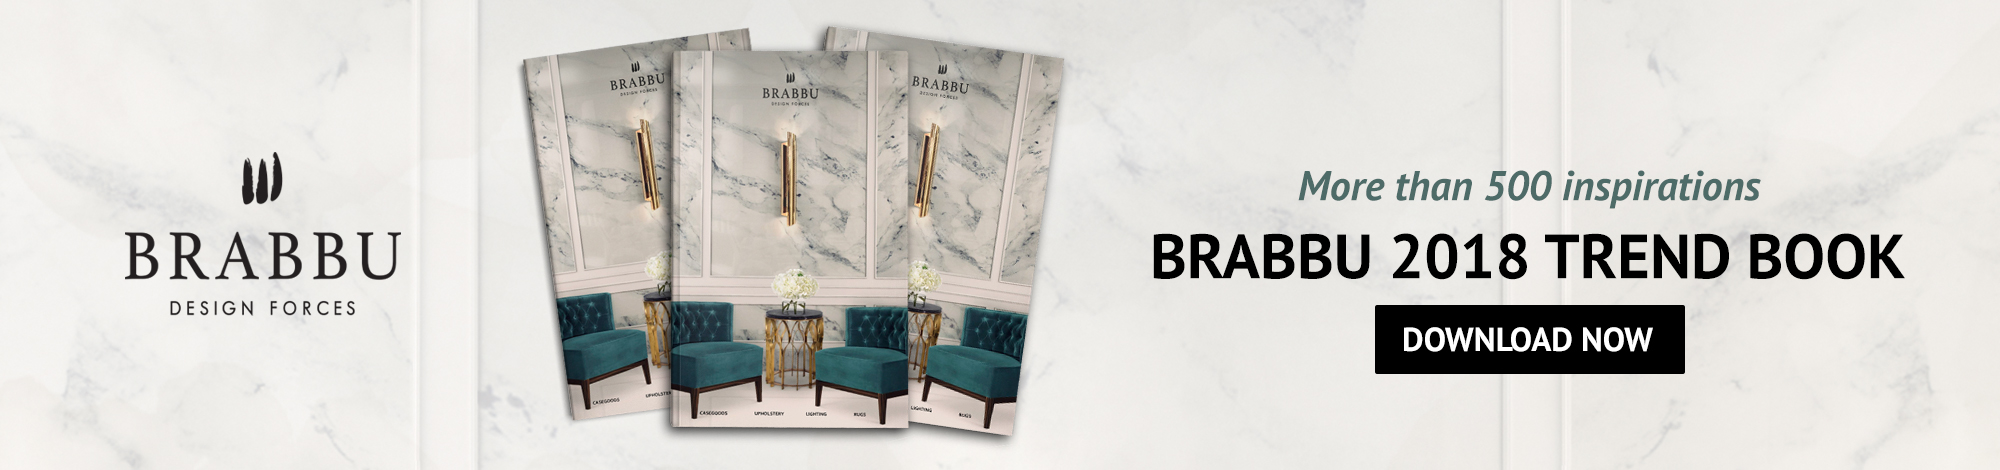 BRABBU Catalogue paris deco off 2019 Paris Deco Off 2019 – The Best of Upholstery Fabrics  1C5EB82328DCFD5BD10428DB124BD945082C079483CACCDD2D pimgpsh fullsize distr